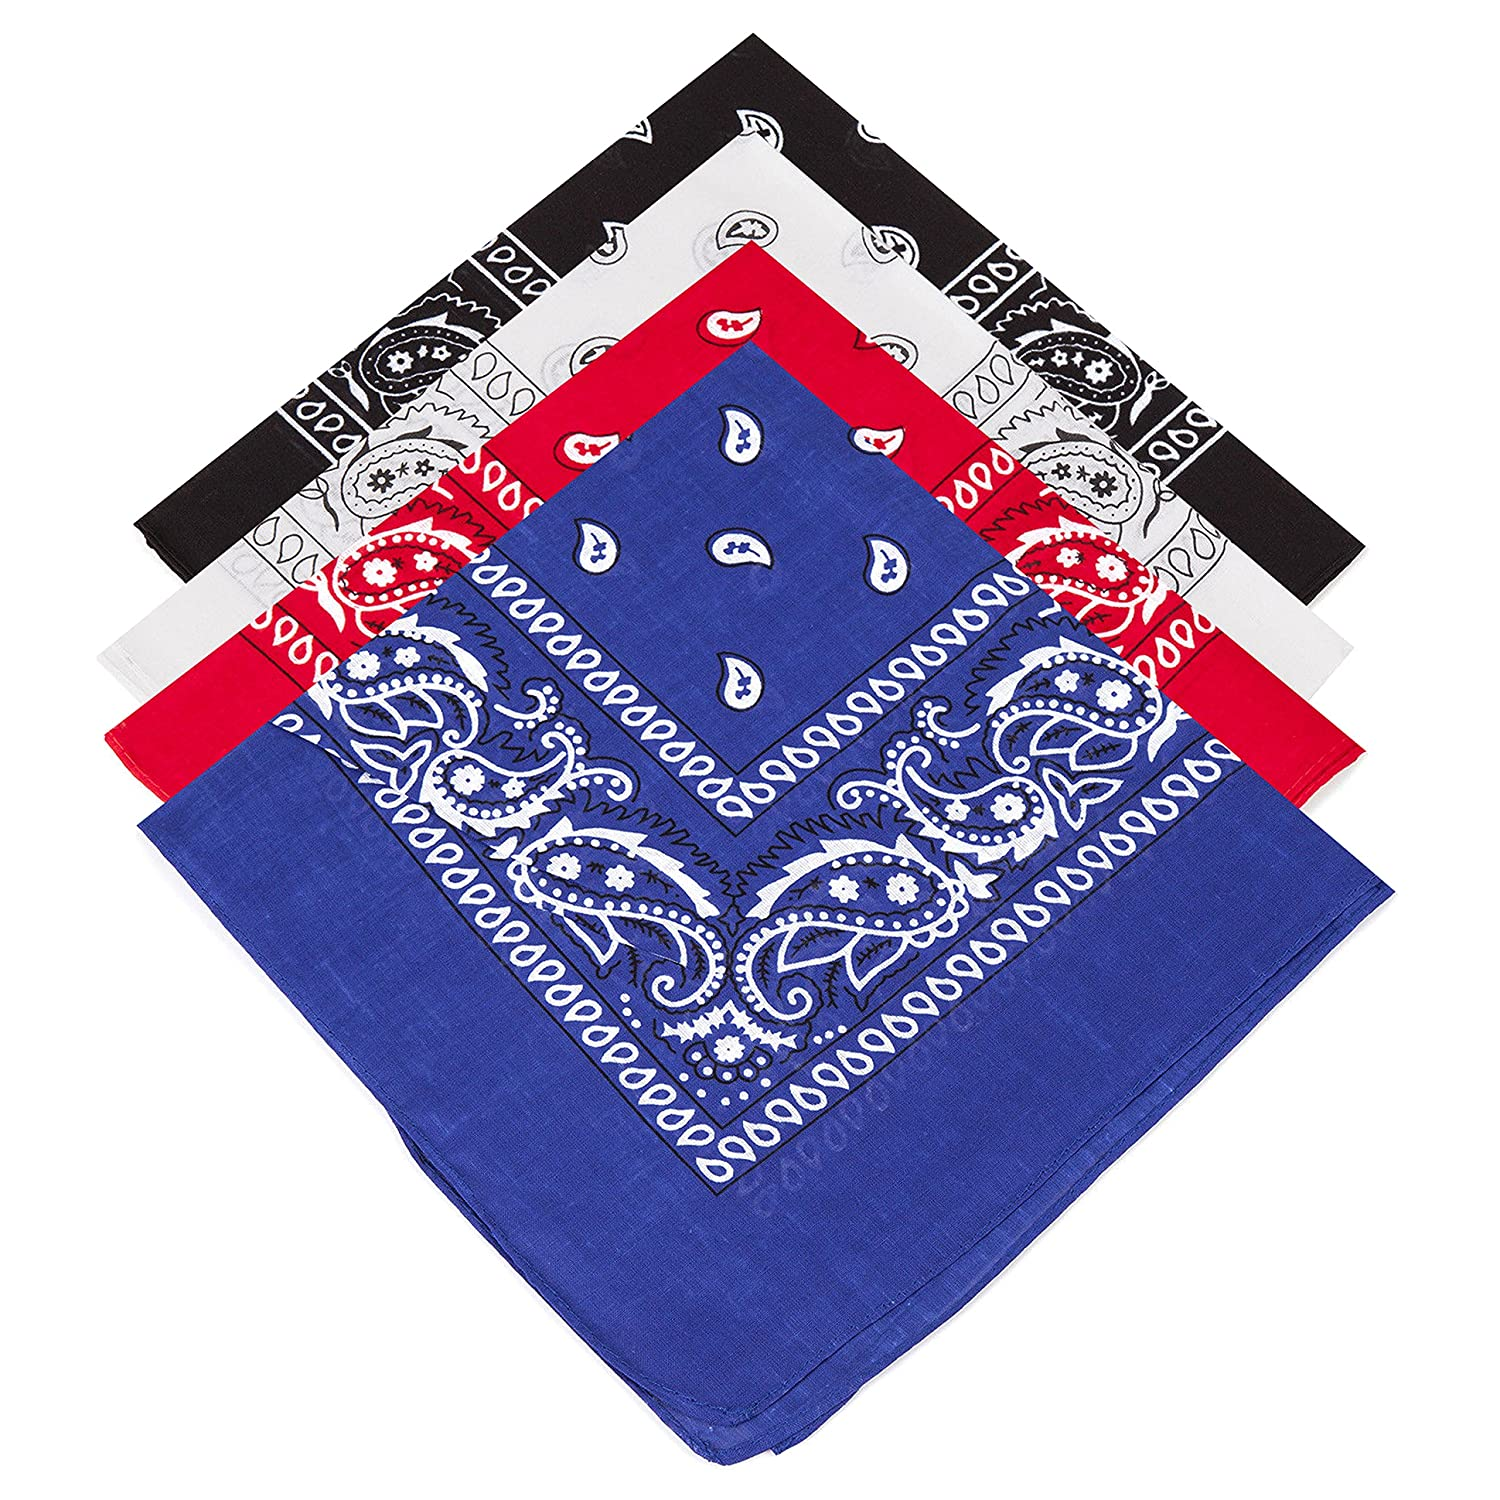 4 Paisley Bandanas Red, Black, White, Royal Blue Including Gold/Teal/Black Temporary Tattoos !